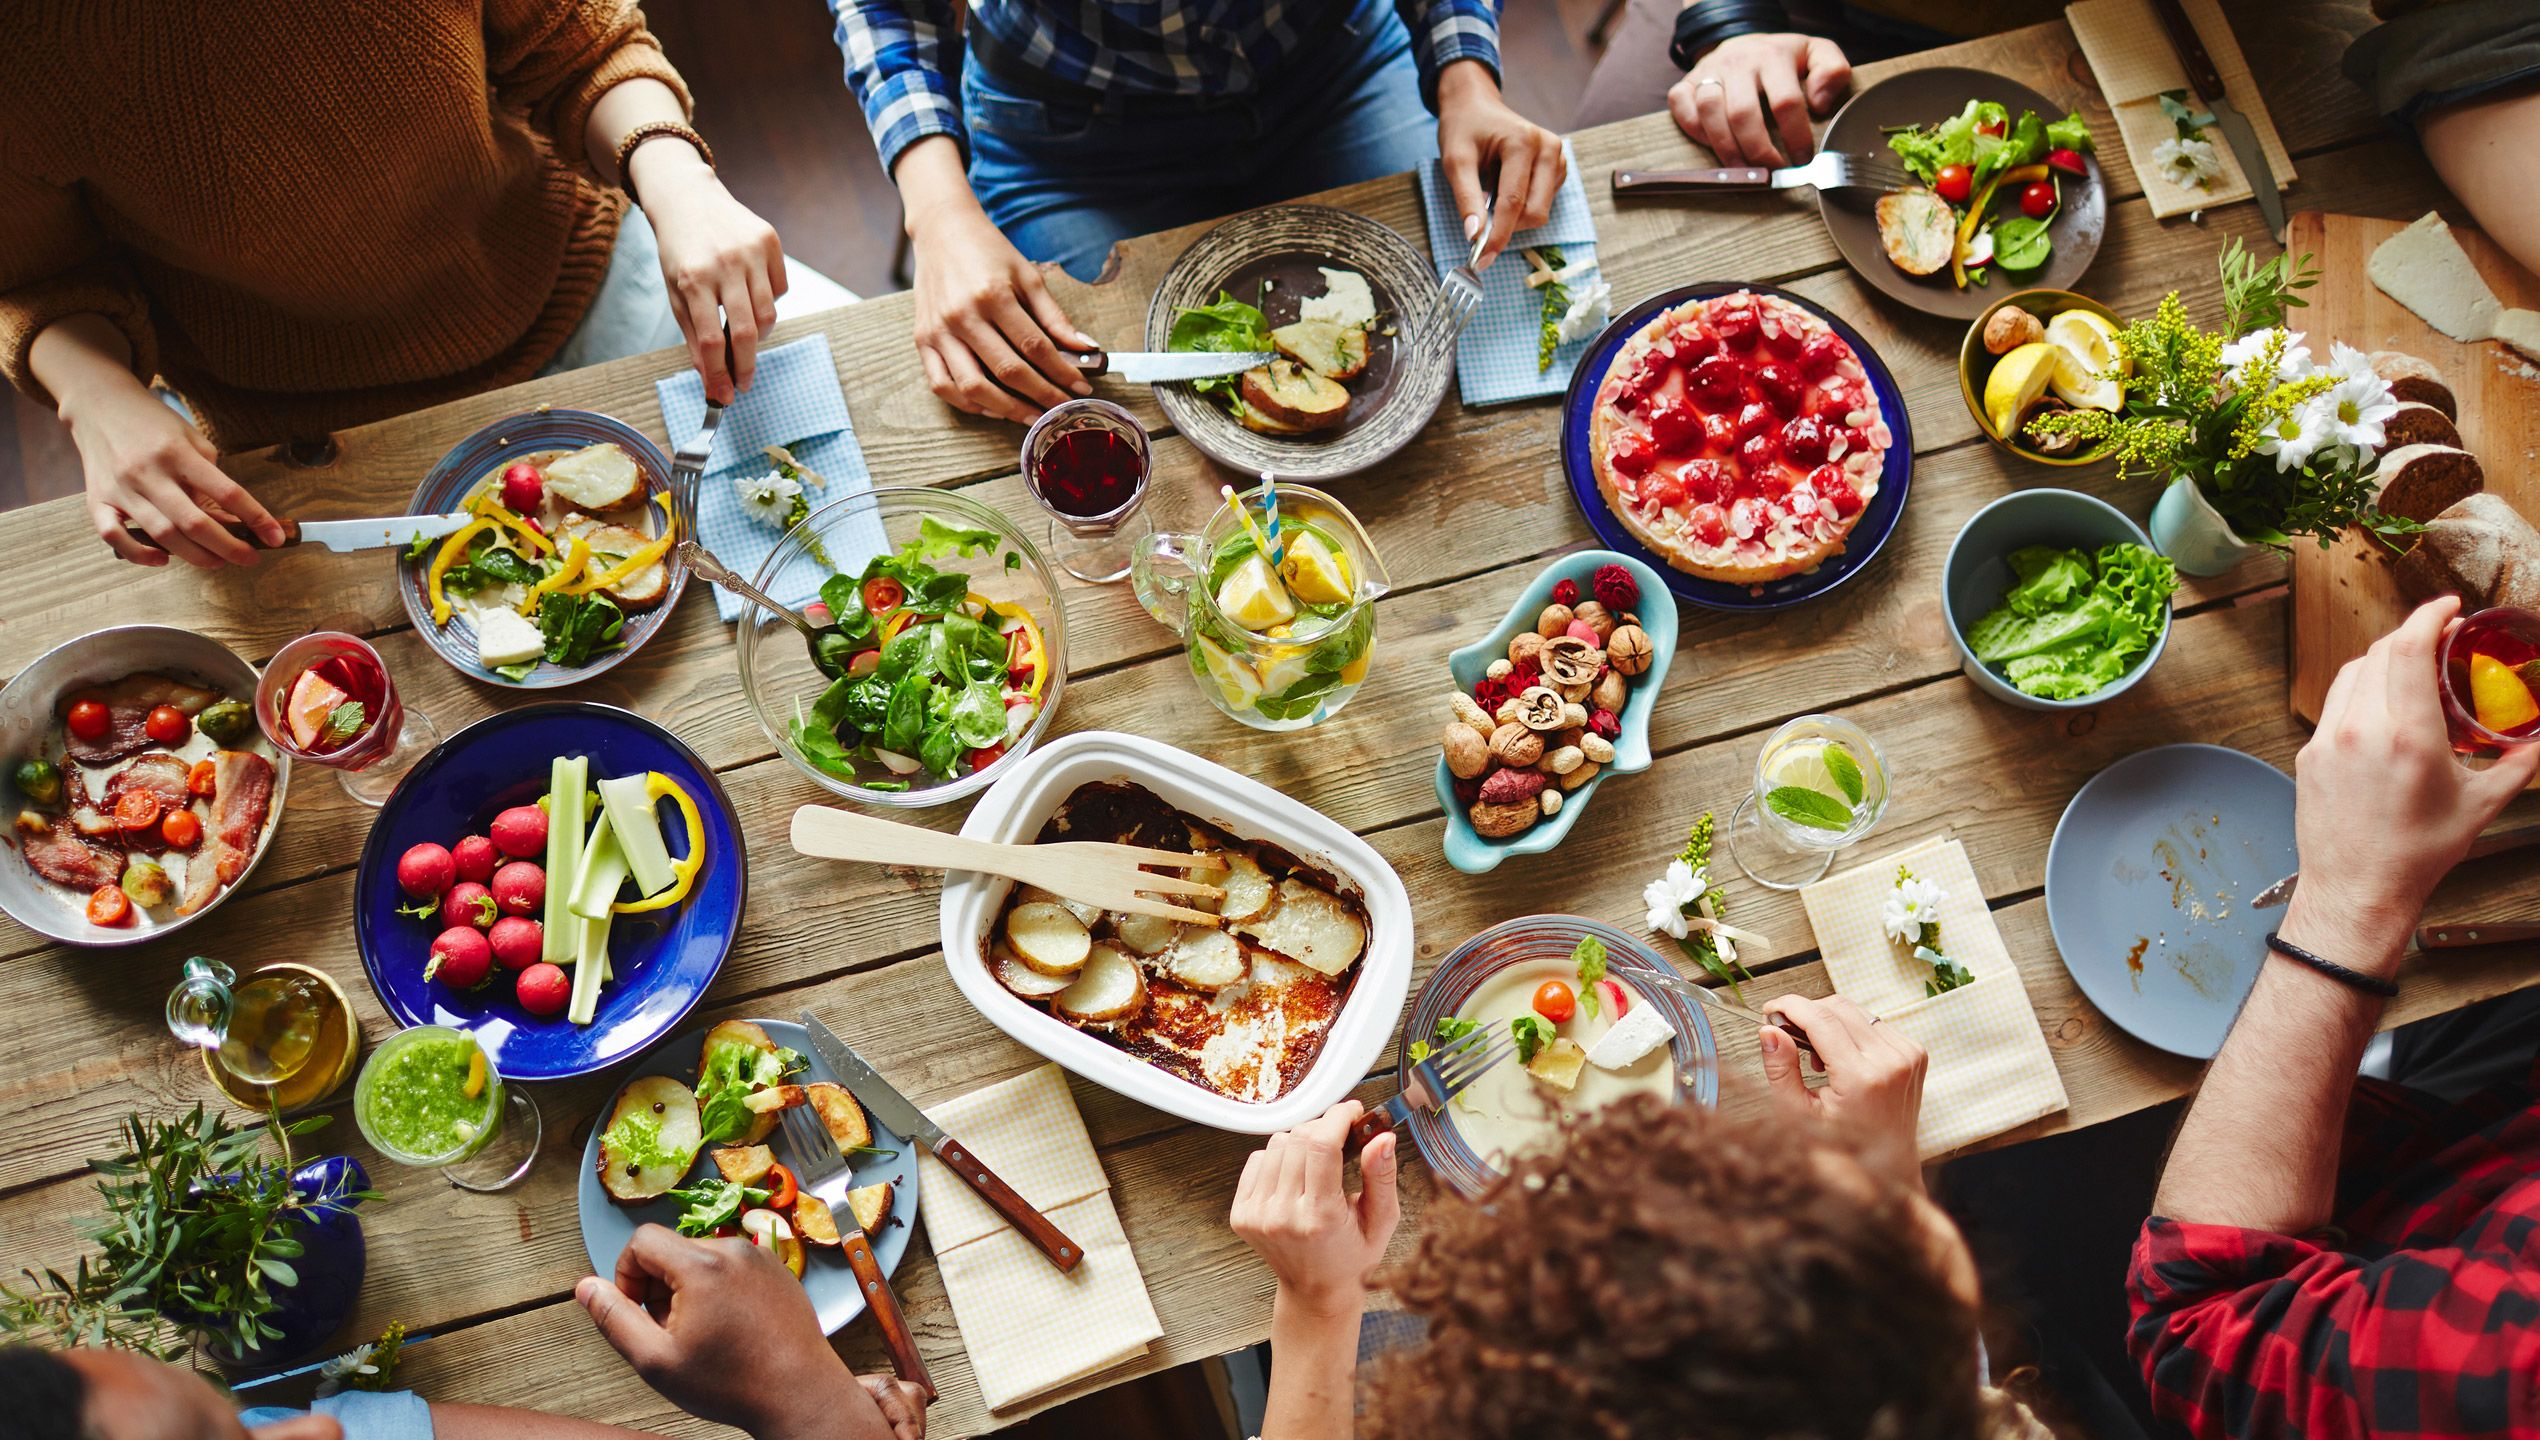 7 Surprising Secrets of Healthy Eaters